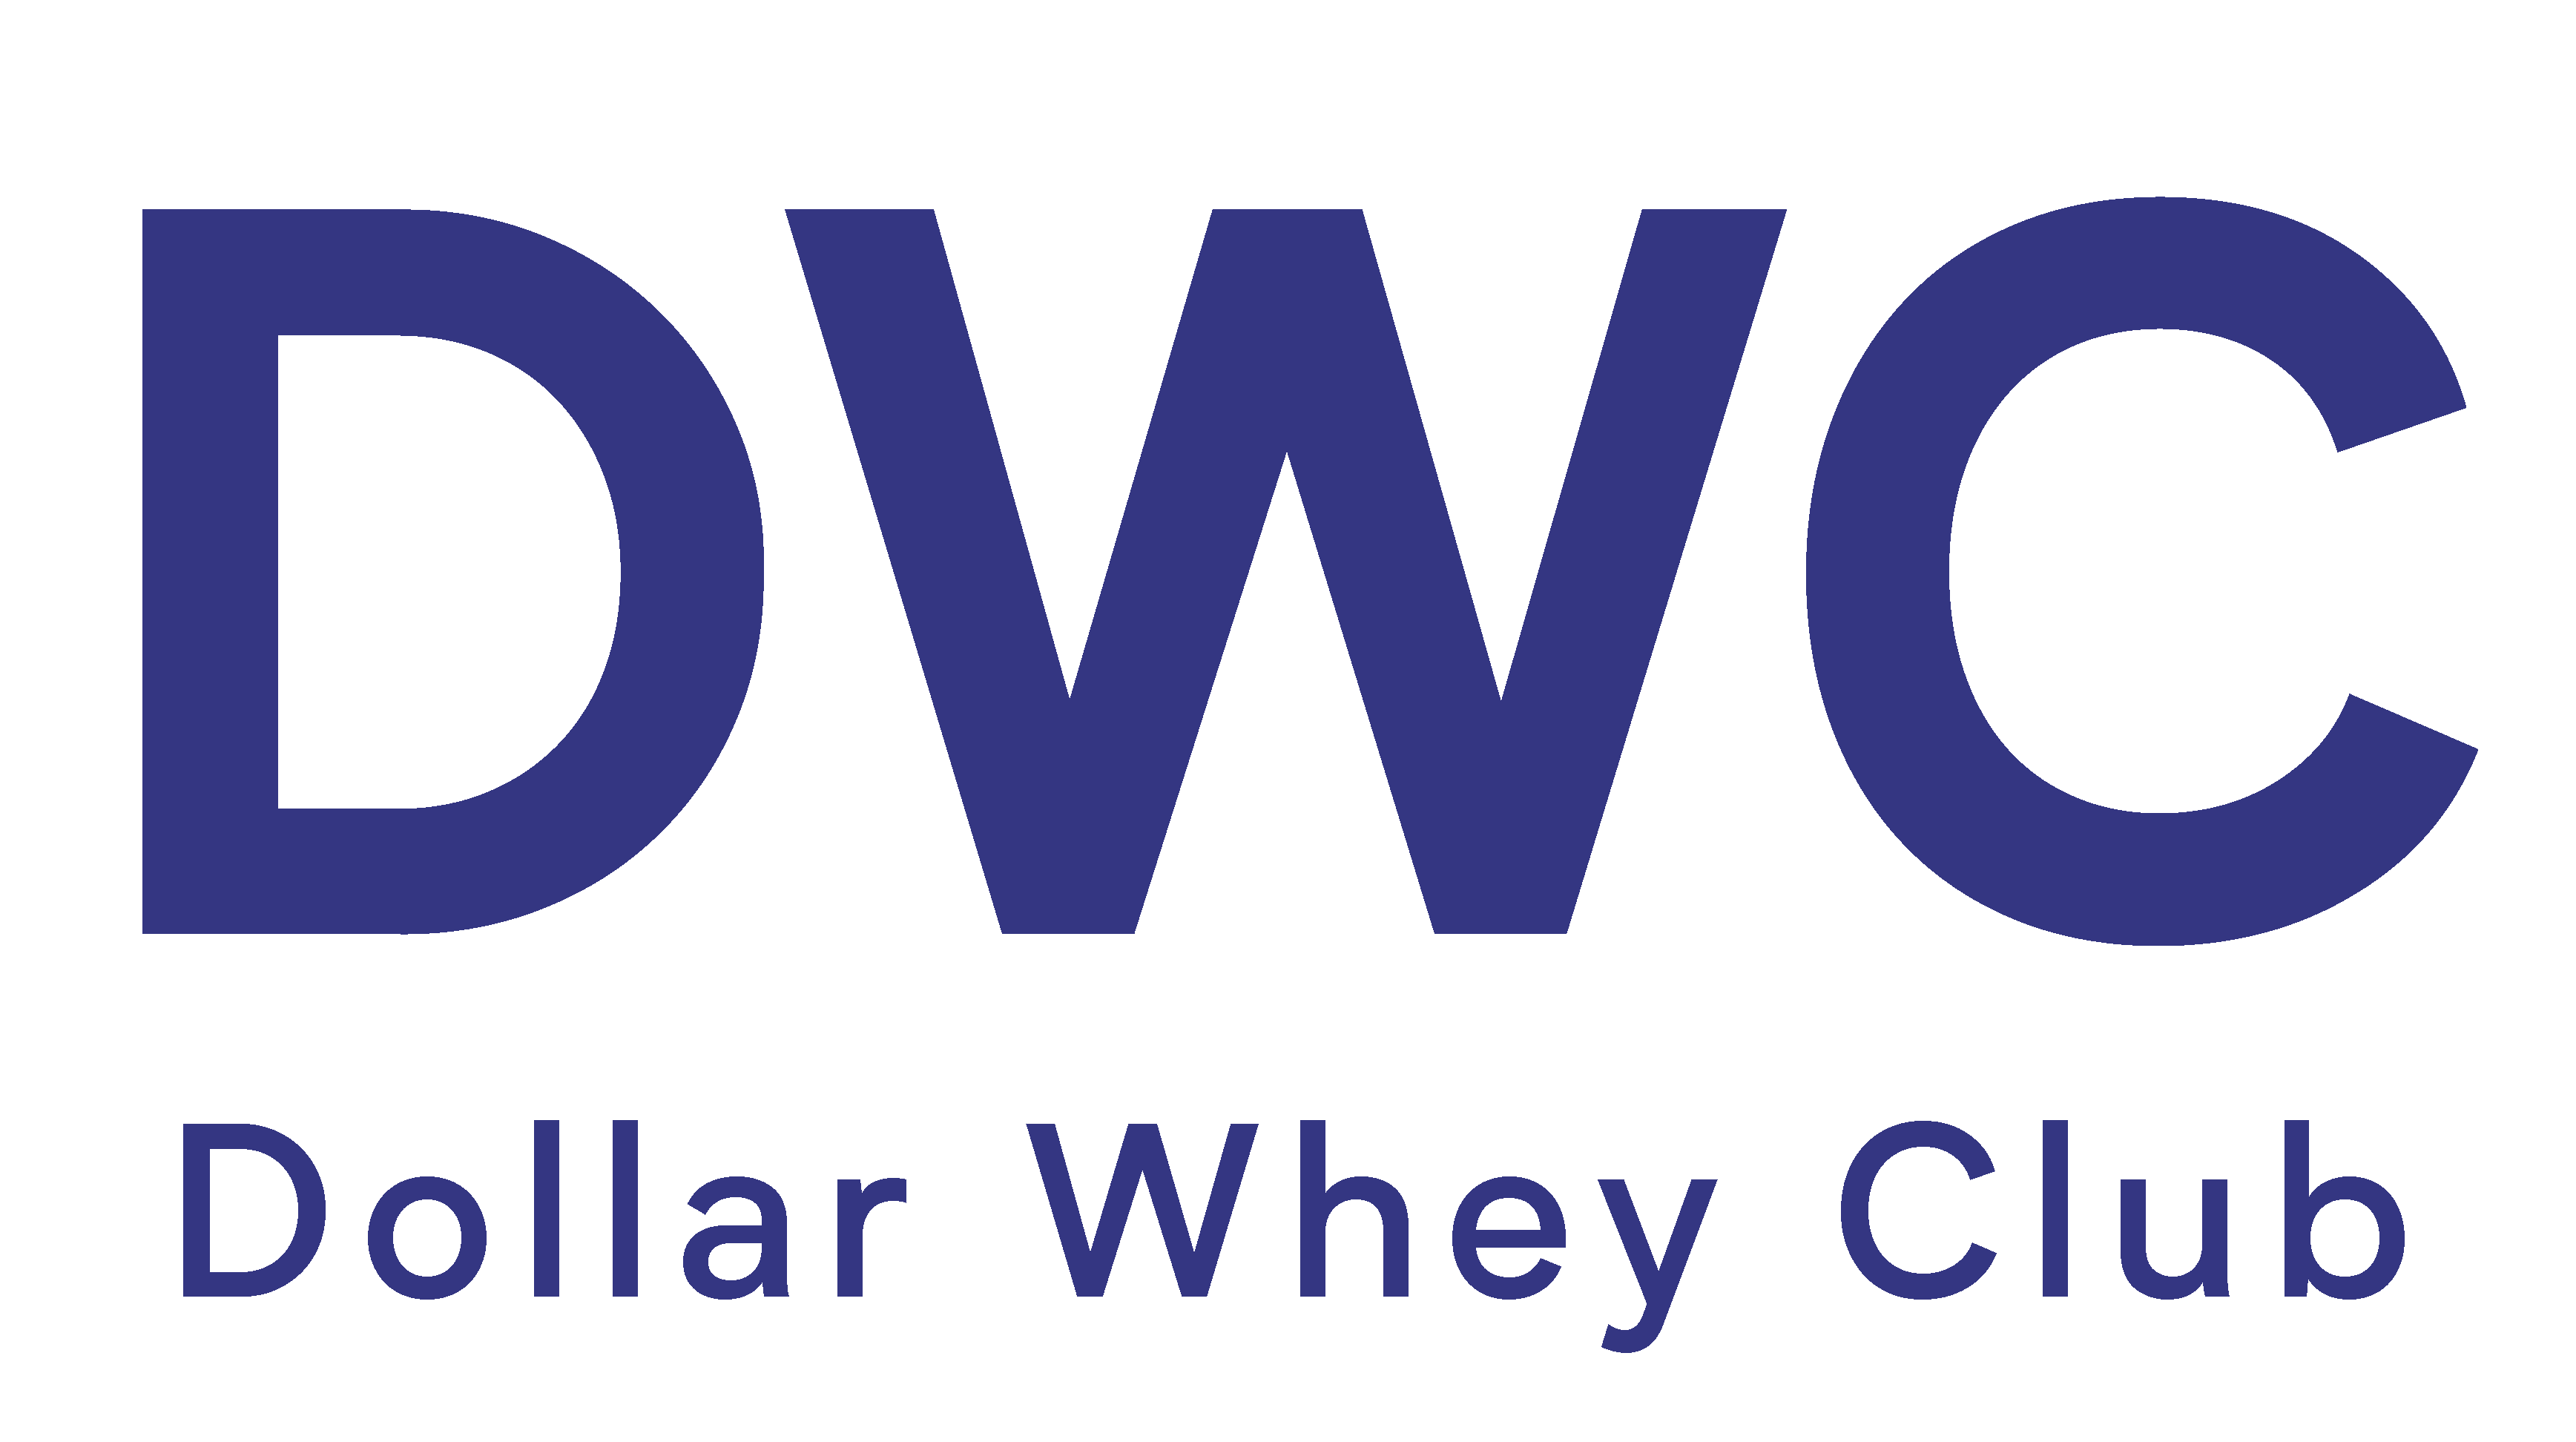 Dollar Whey Club by BYOP | $1 Whey Protein